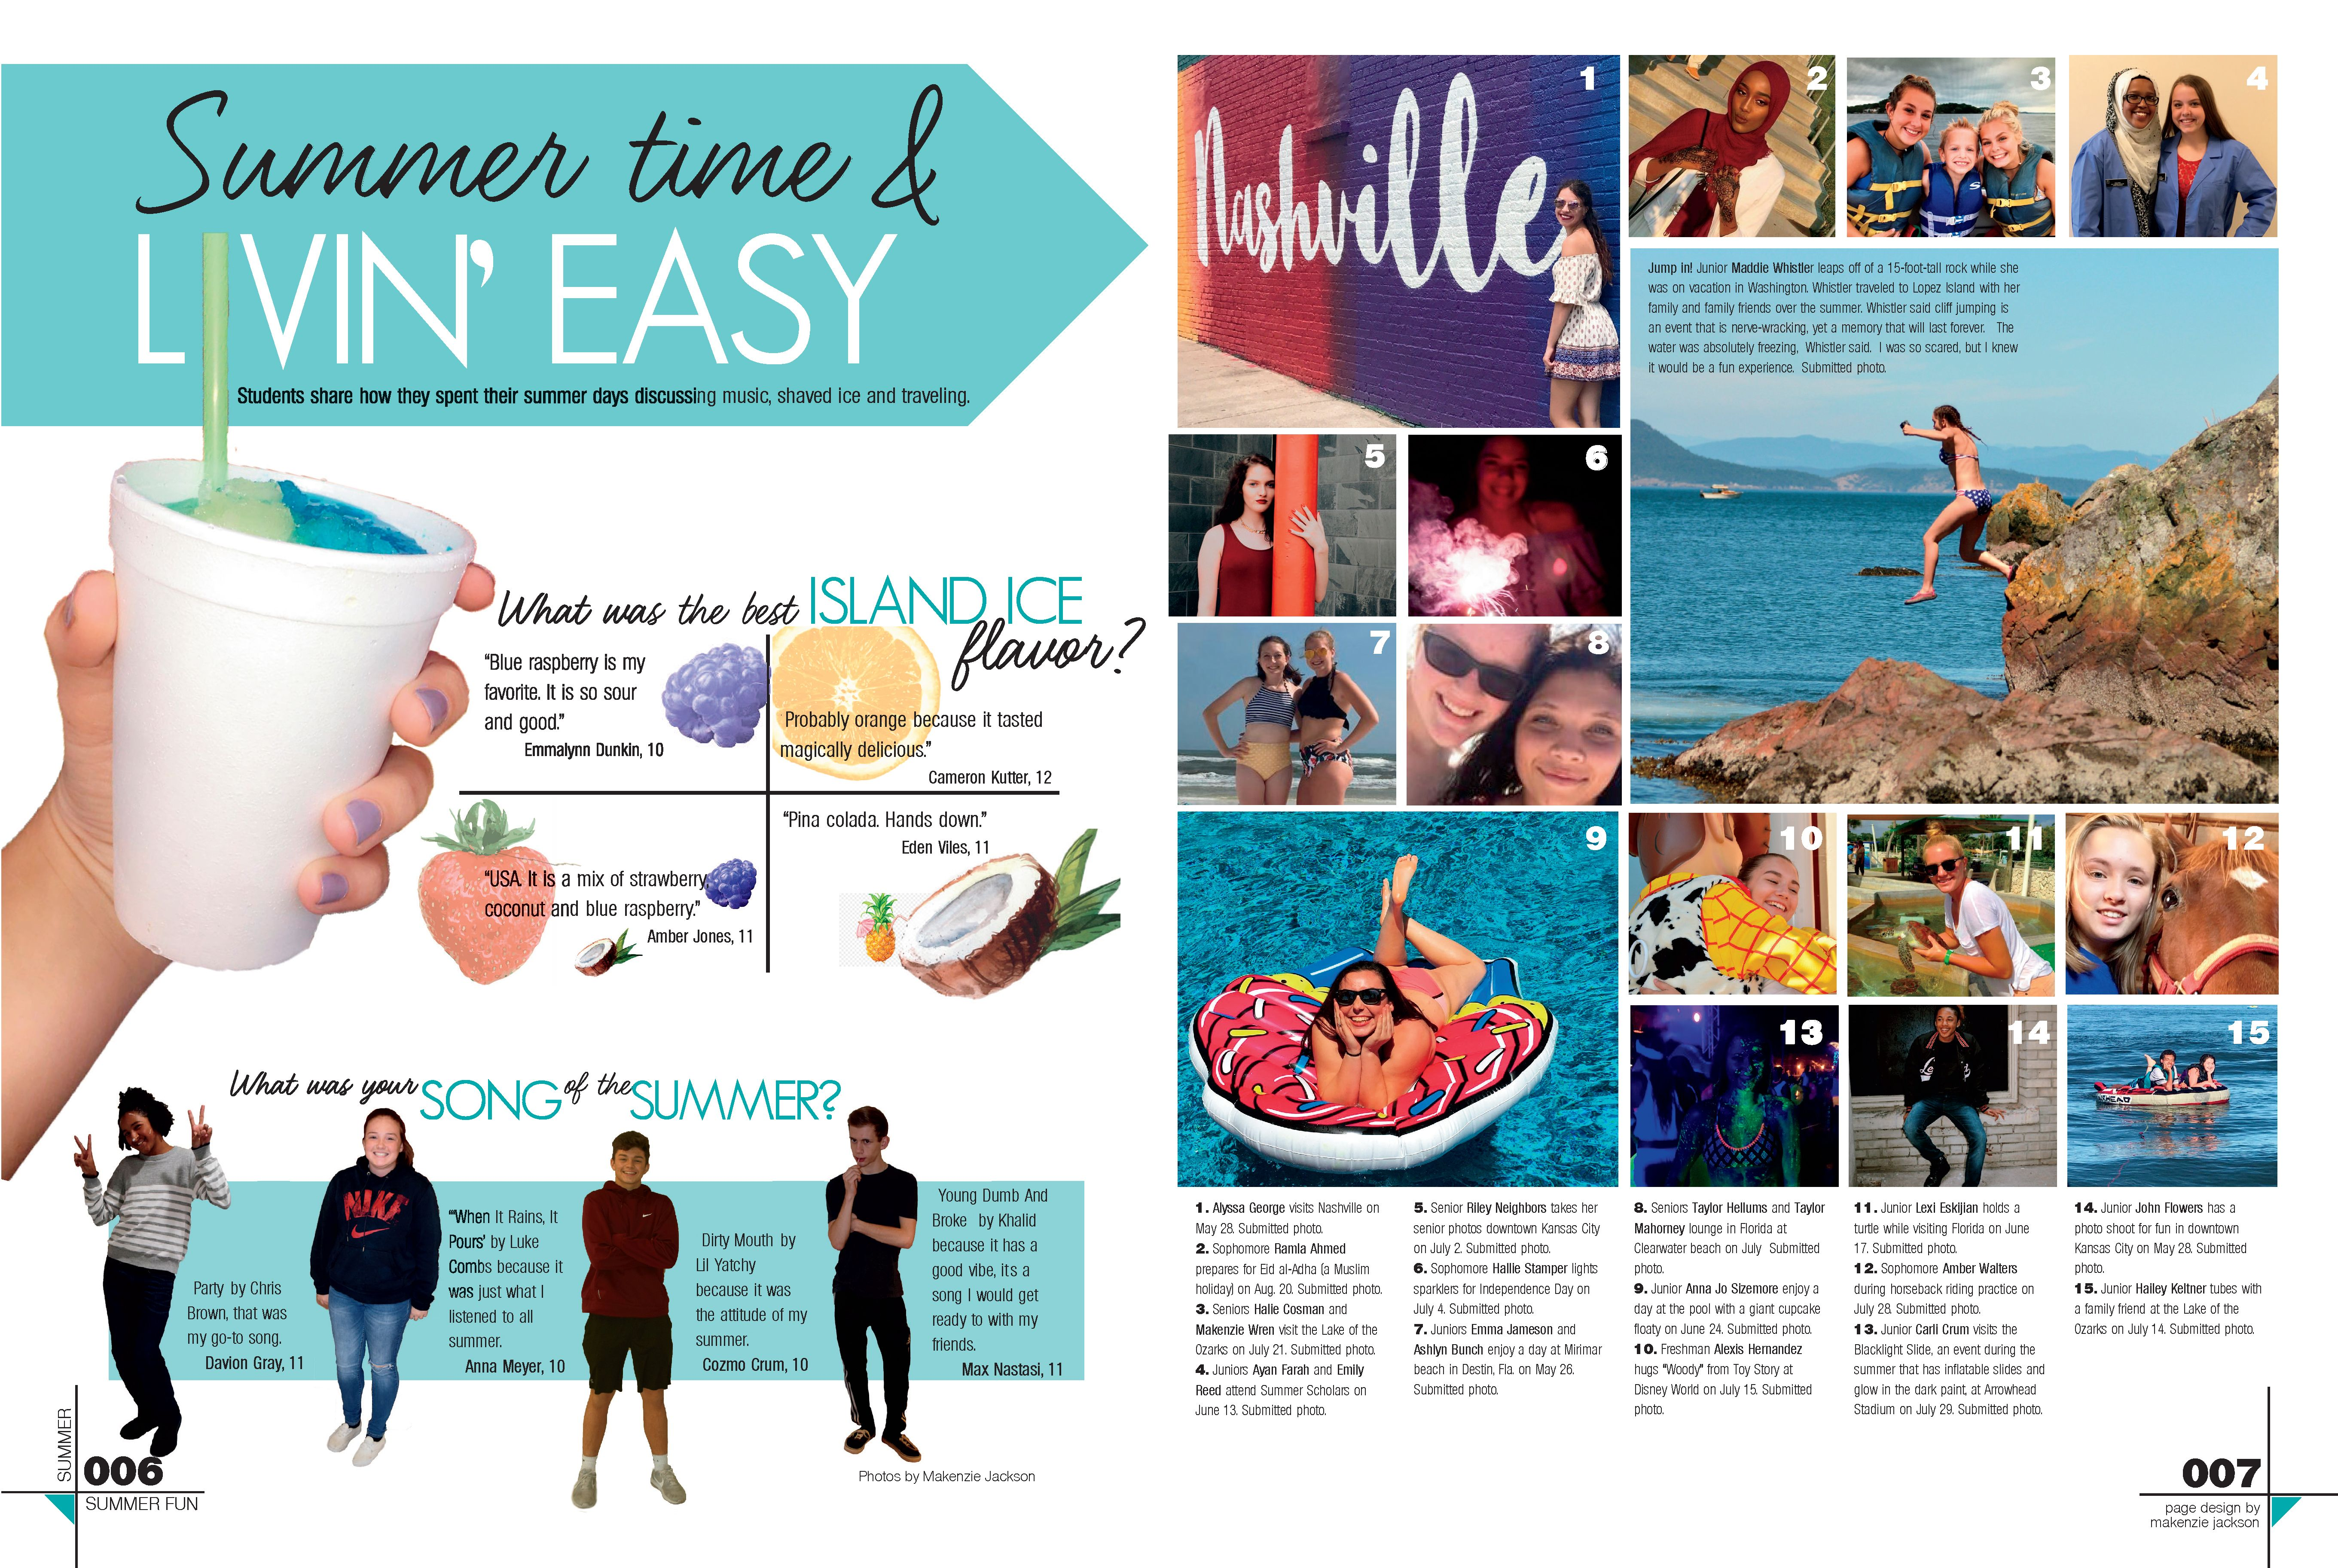 Winnetonka High School Kansas City Mo Summer Coverage With Packages On Favorite Ices Songs And Travel Yearbook Layouts Yearbook Design Yearbook Pages